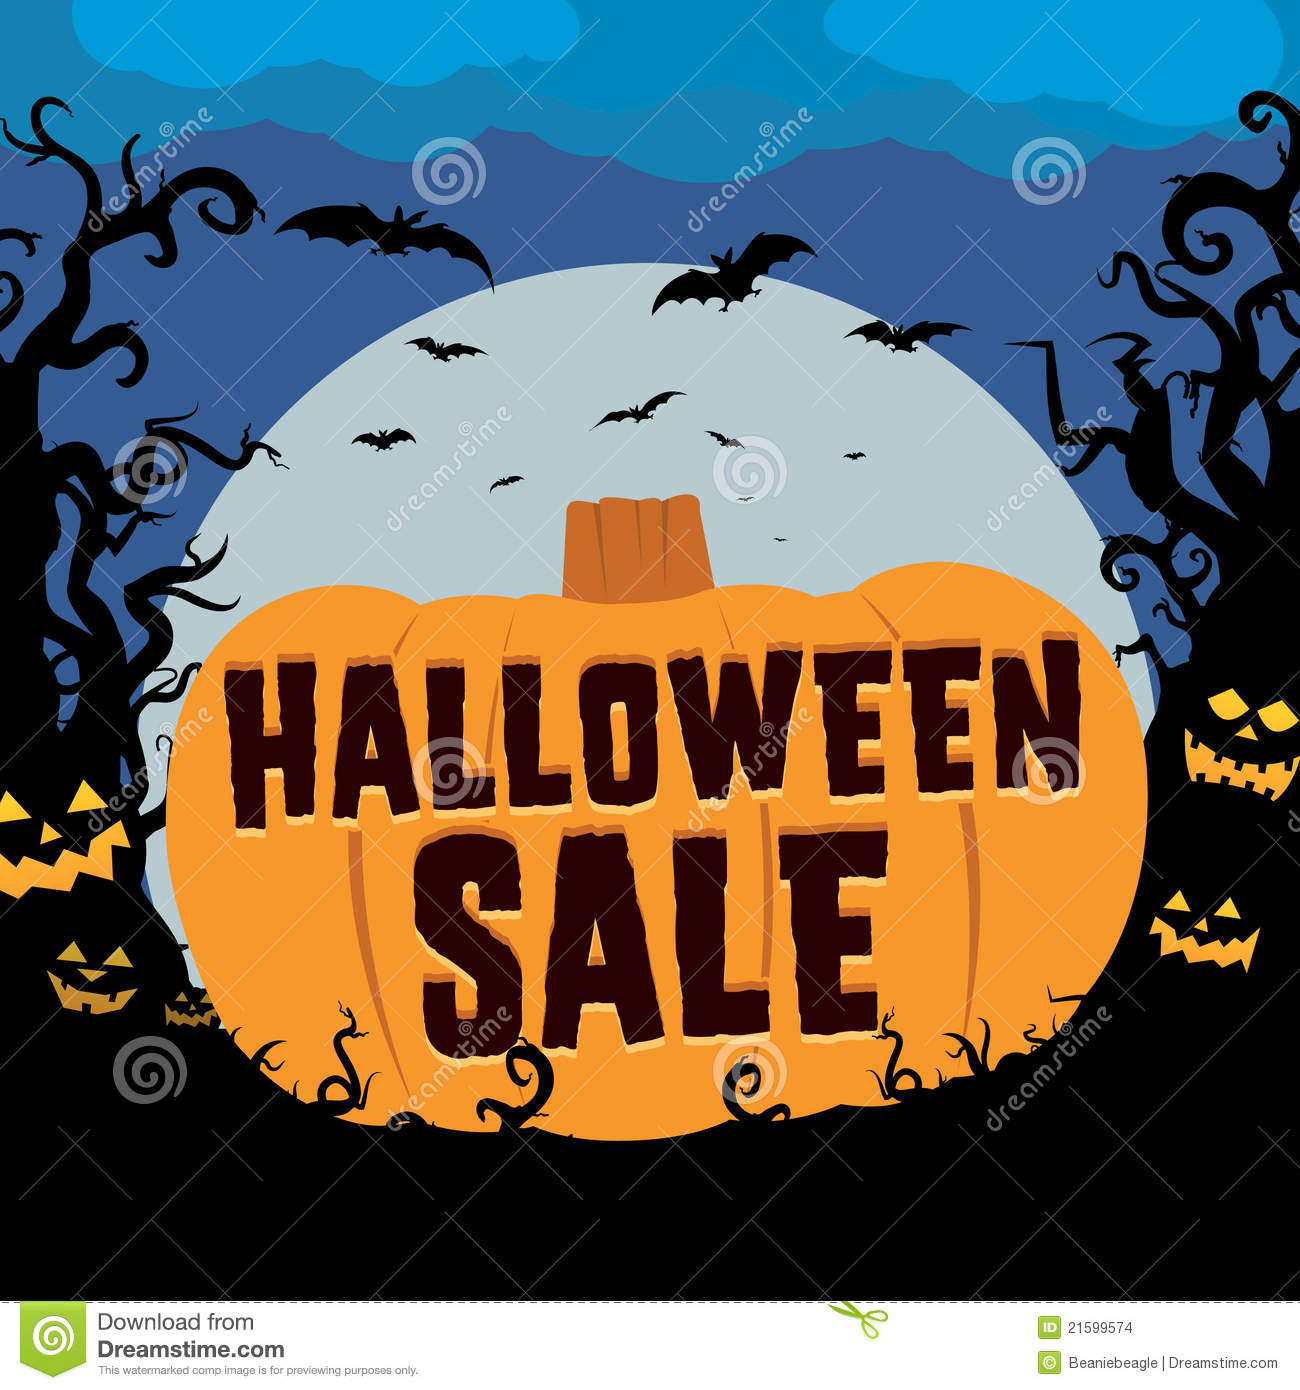 Halloween Sale Stock Images - Image: 21599574